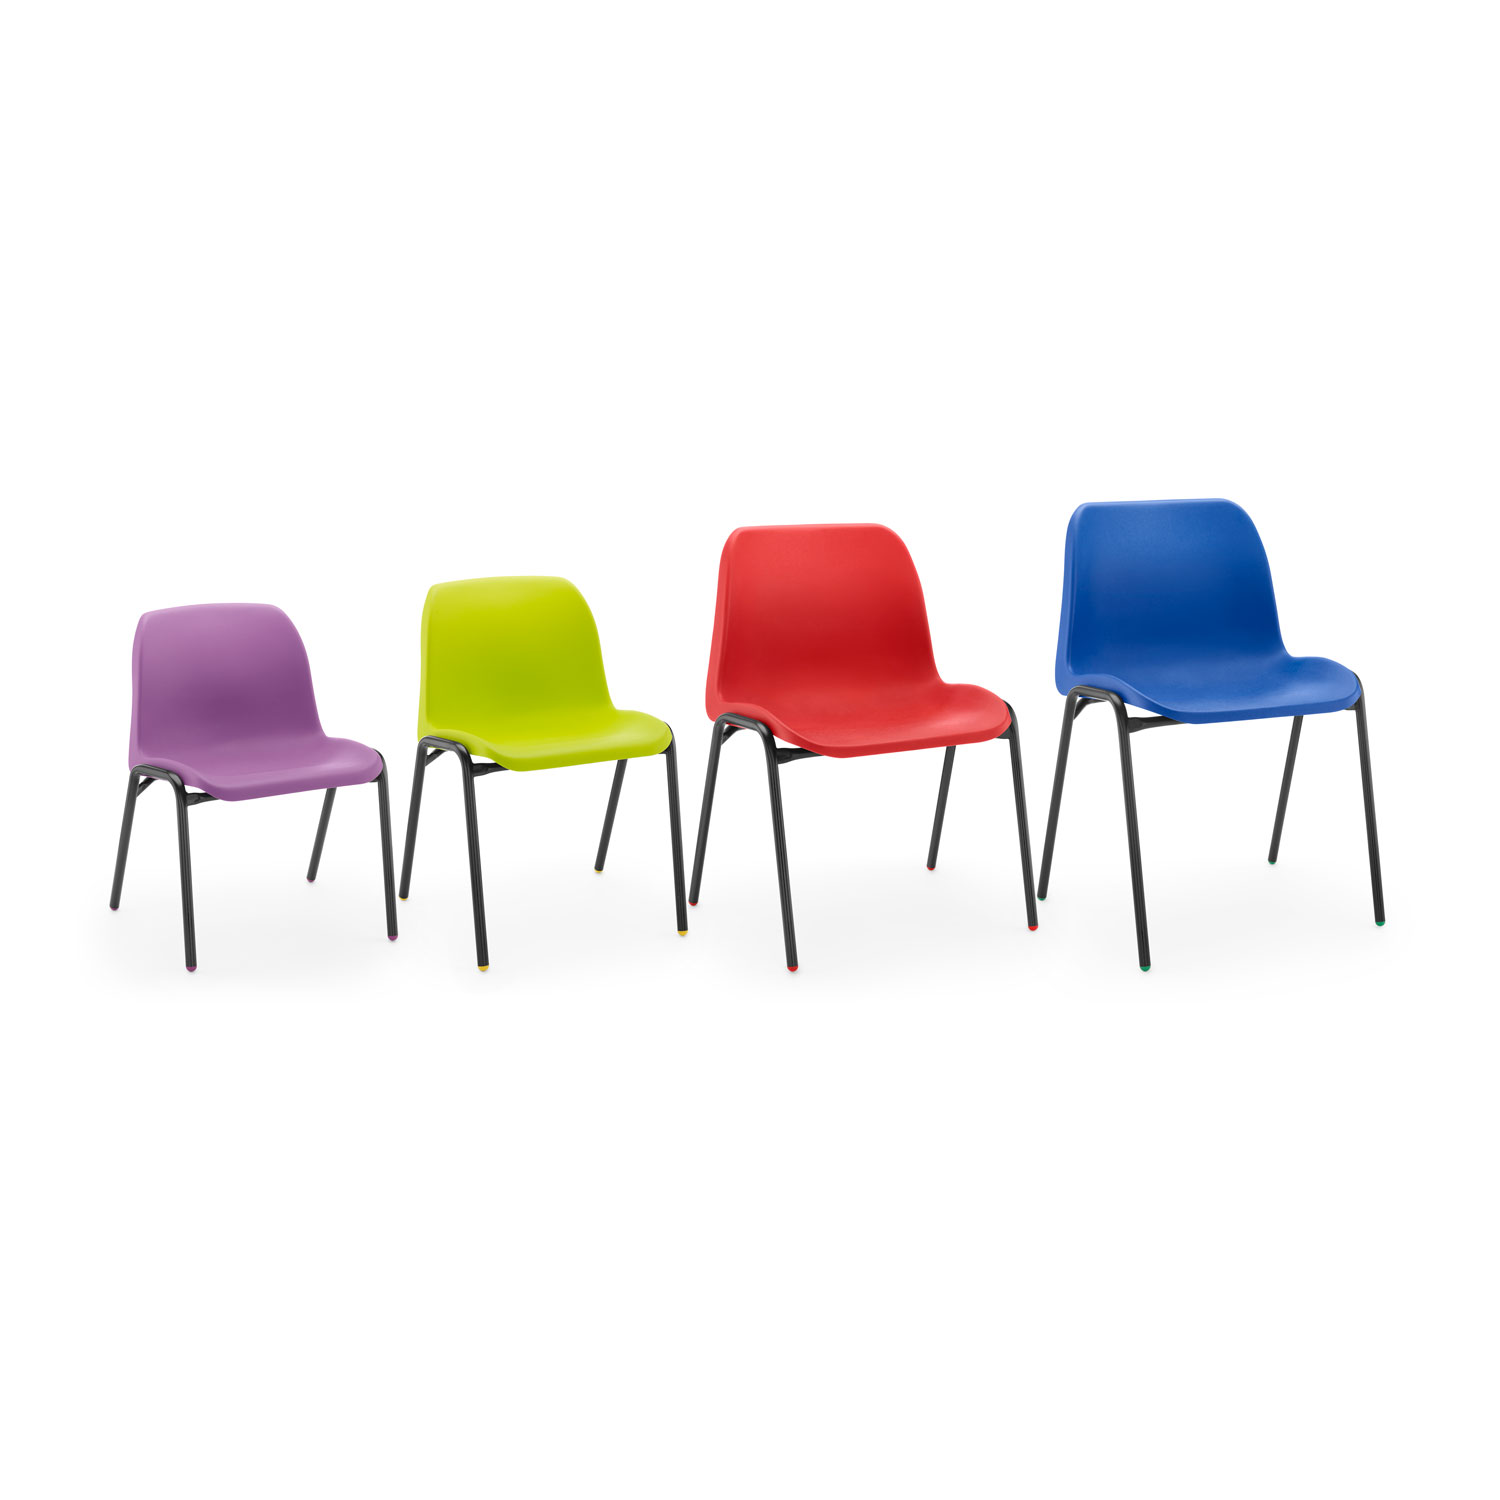 affinity chair group of 4 blue red lime purple